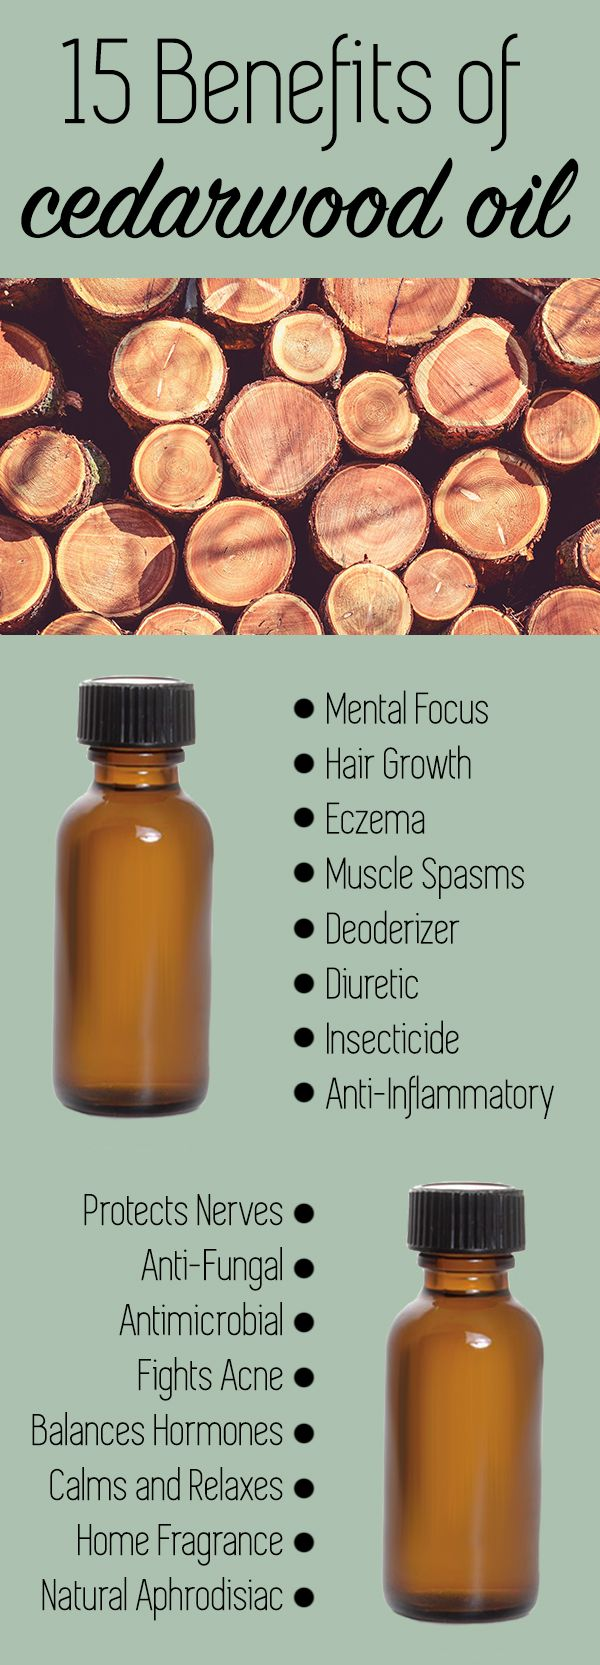 Benefits and harms of cedar oil: consider in more detail